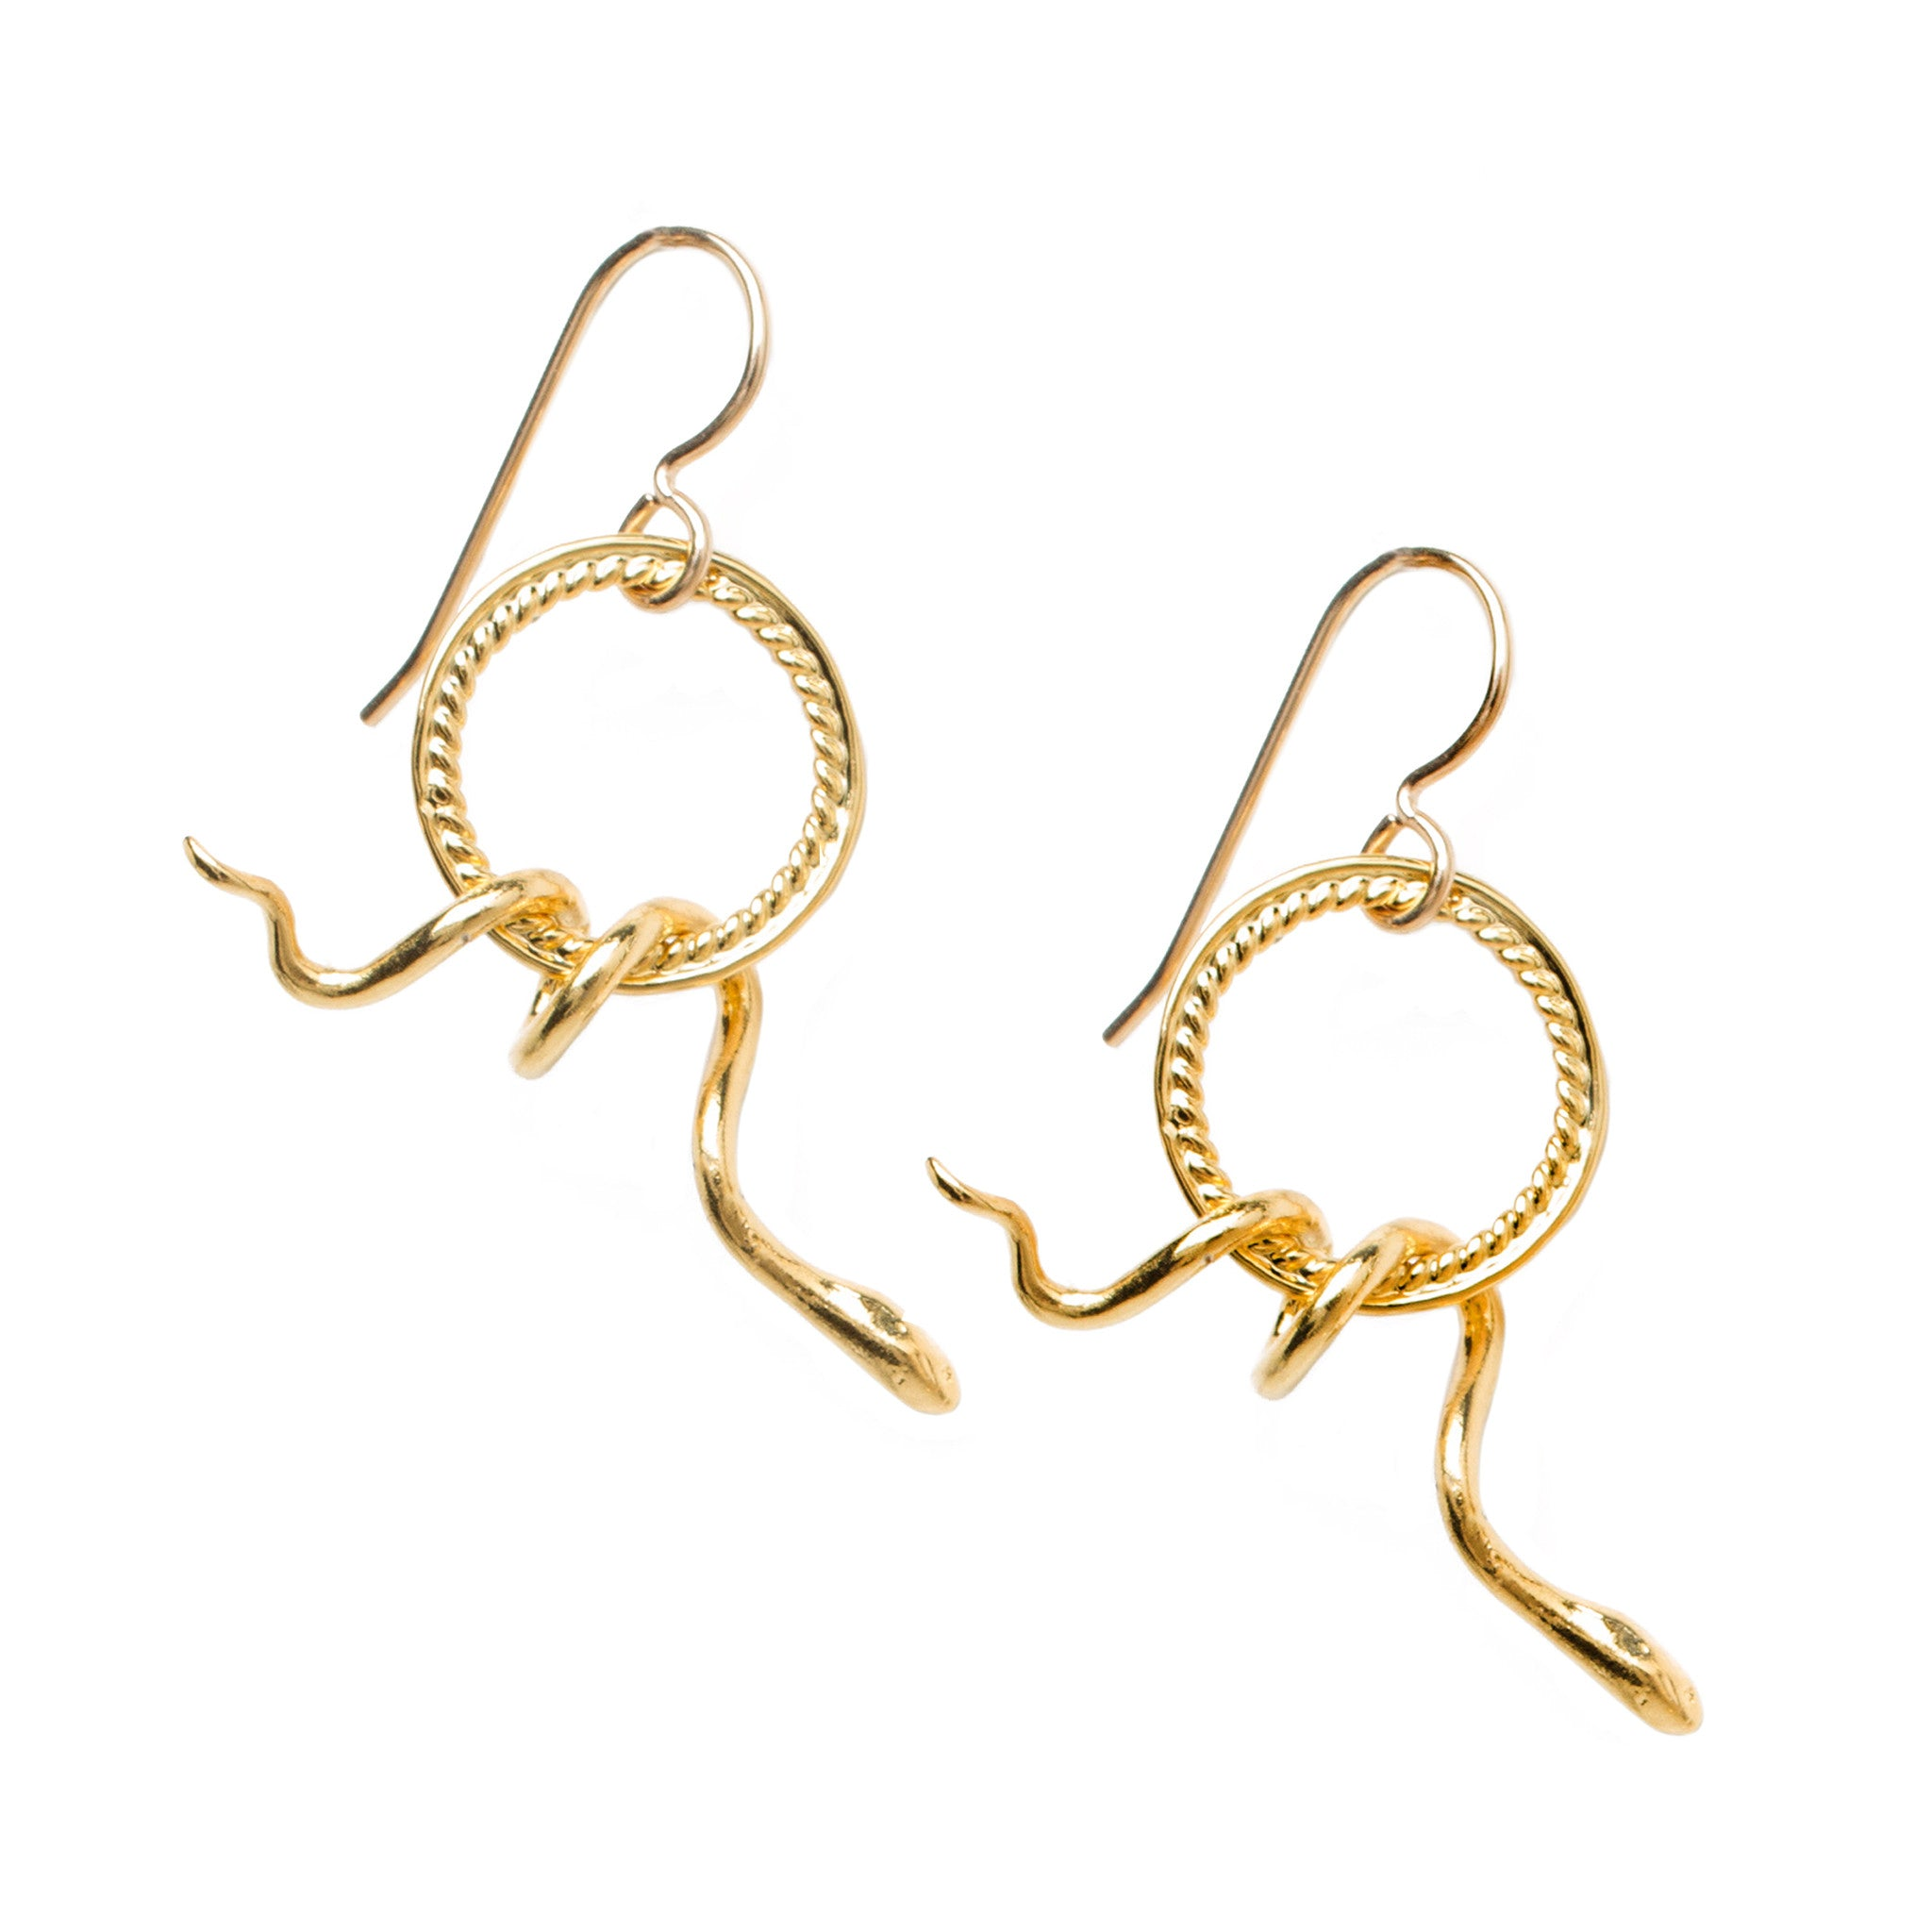 kaju women exquisite plated comp bali asmitta for hoop gold products earring shape earrings